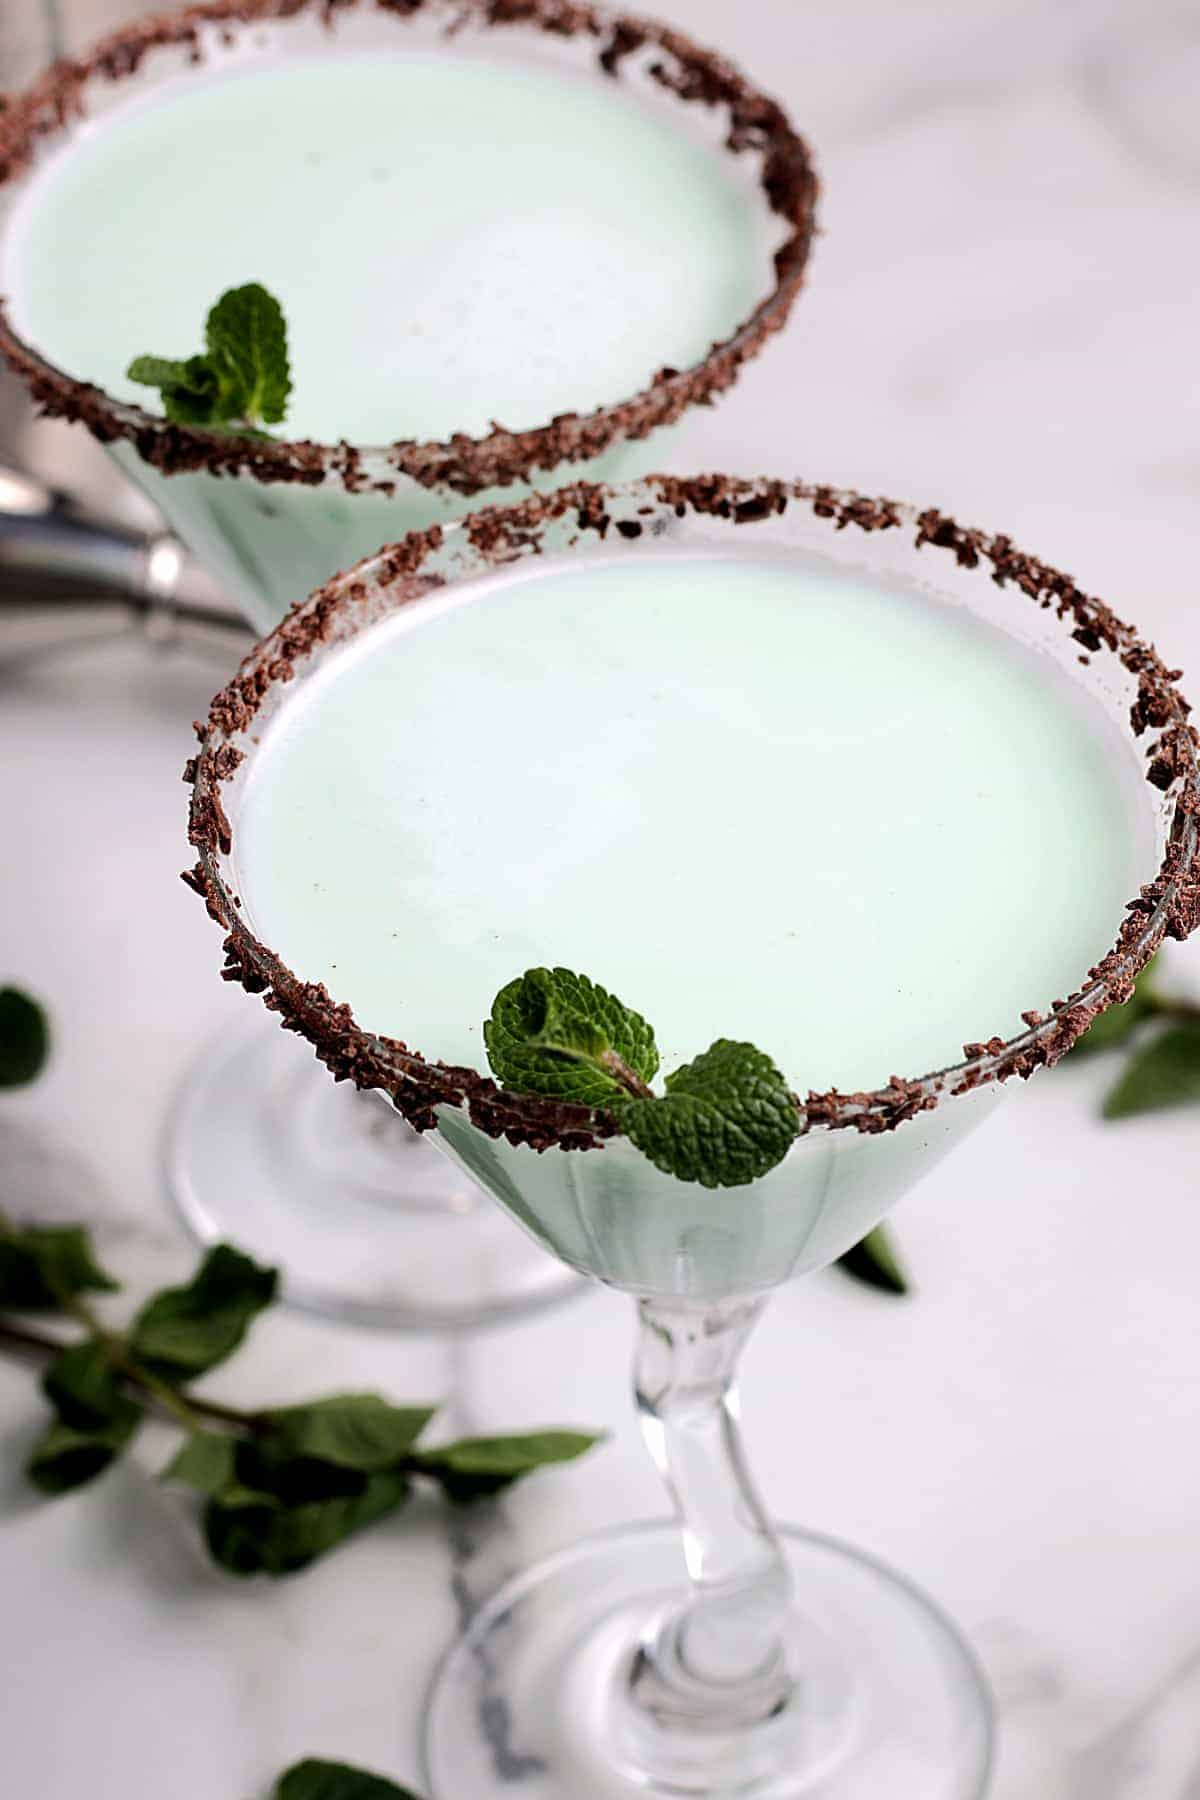 Two glasses filled with a grasshopper drink and a chocolate rim.